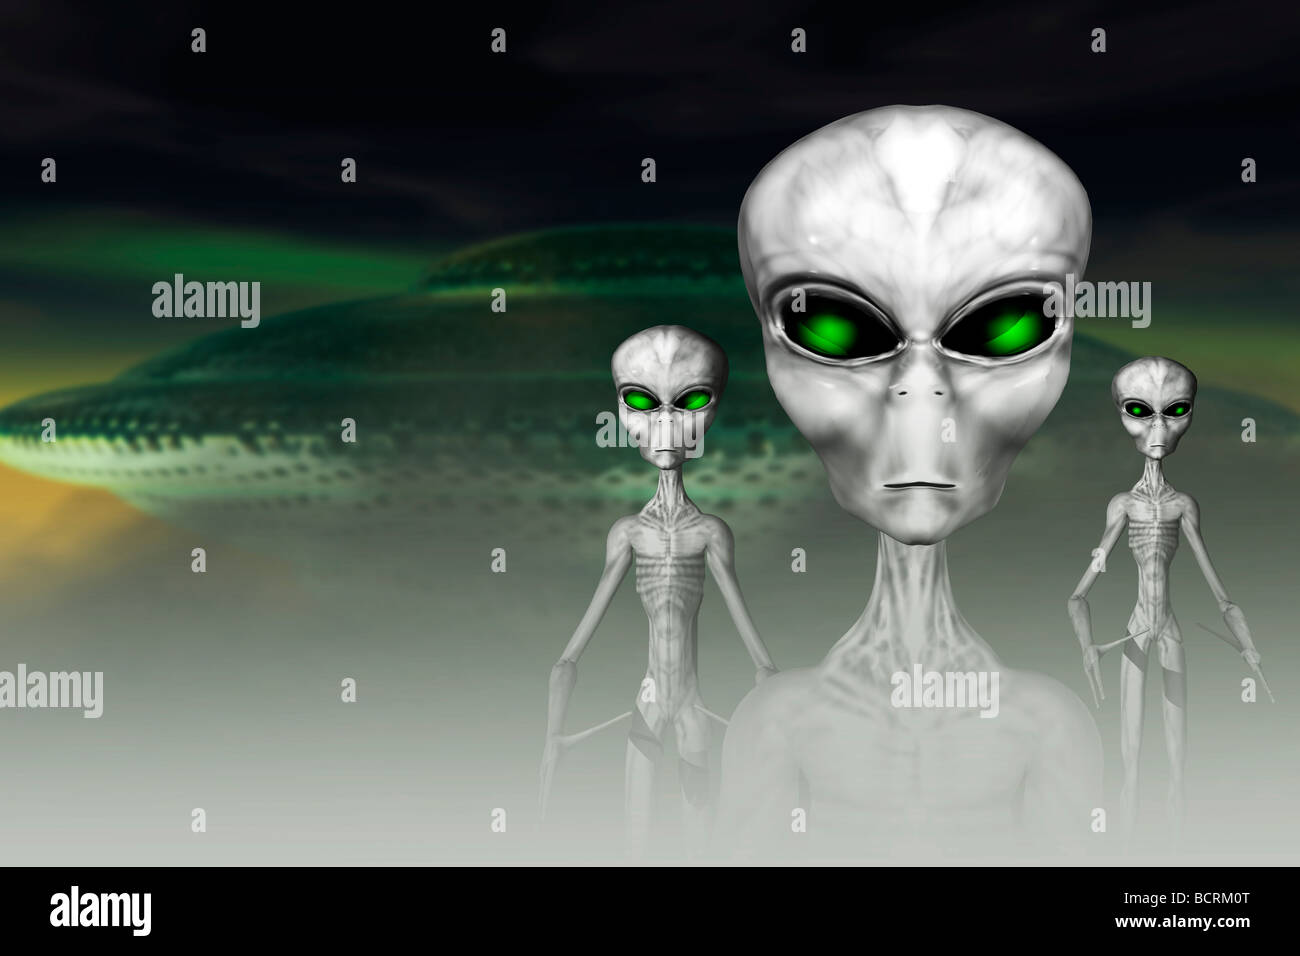 Aliens with their spaceship - Stock Image